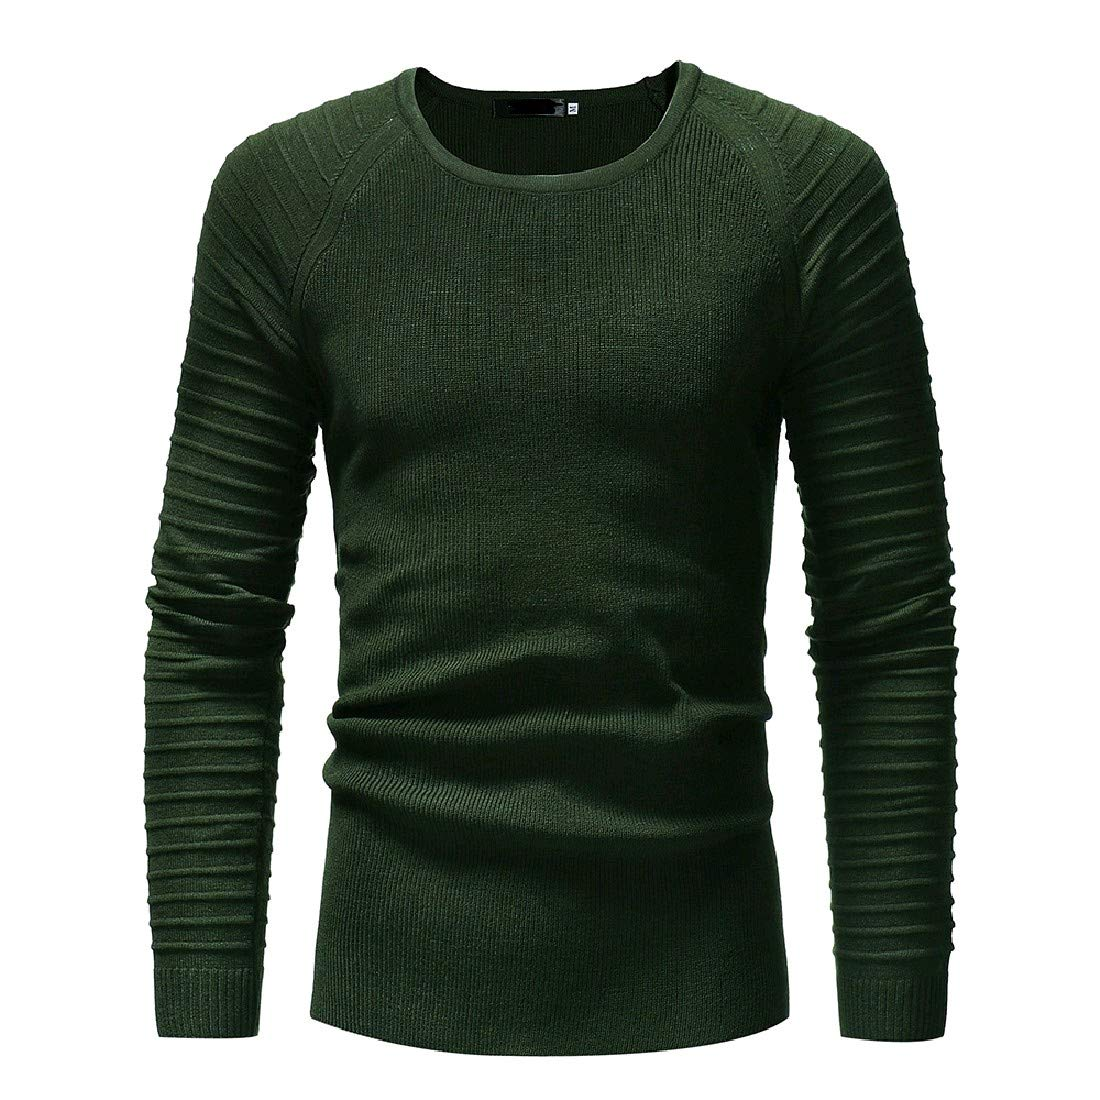 YUNY Men Folding Sleeve Skinny Oversize Scoop Pullovers Sweater Army Green S